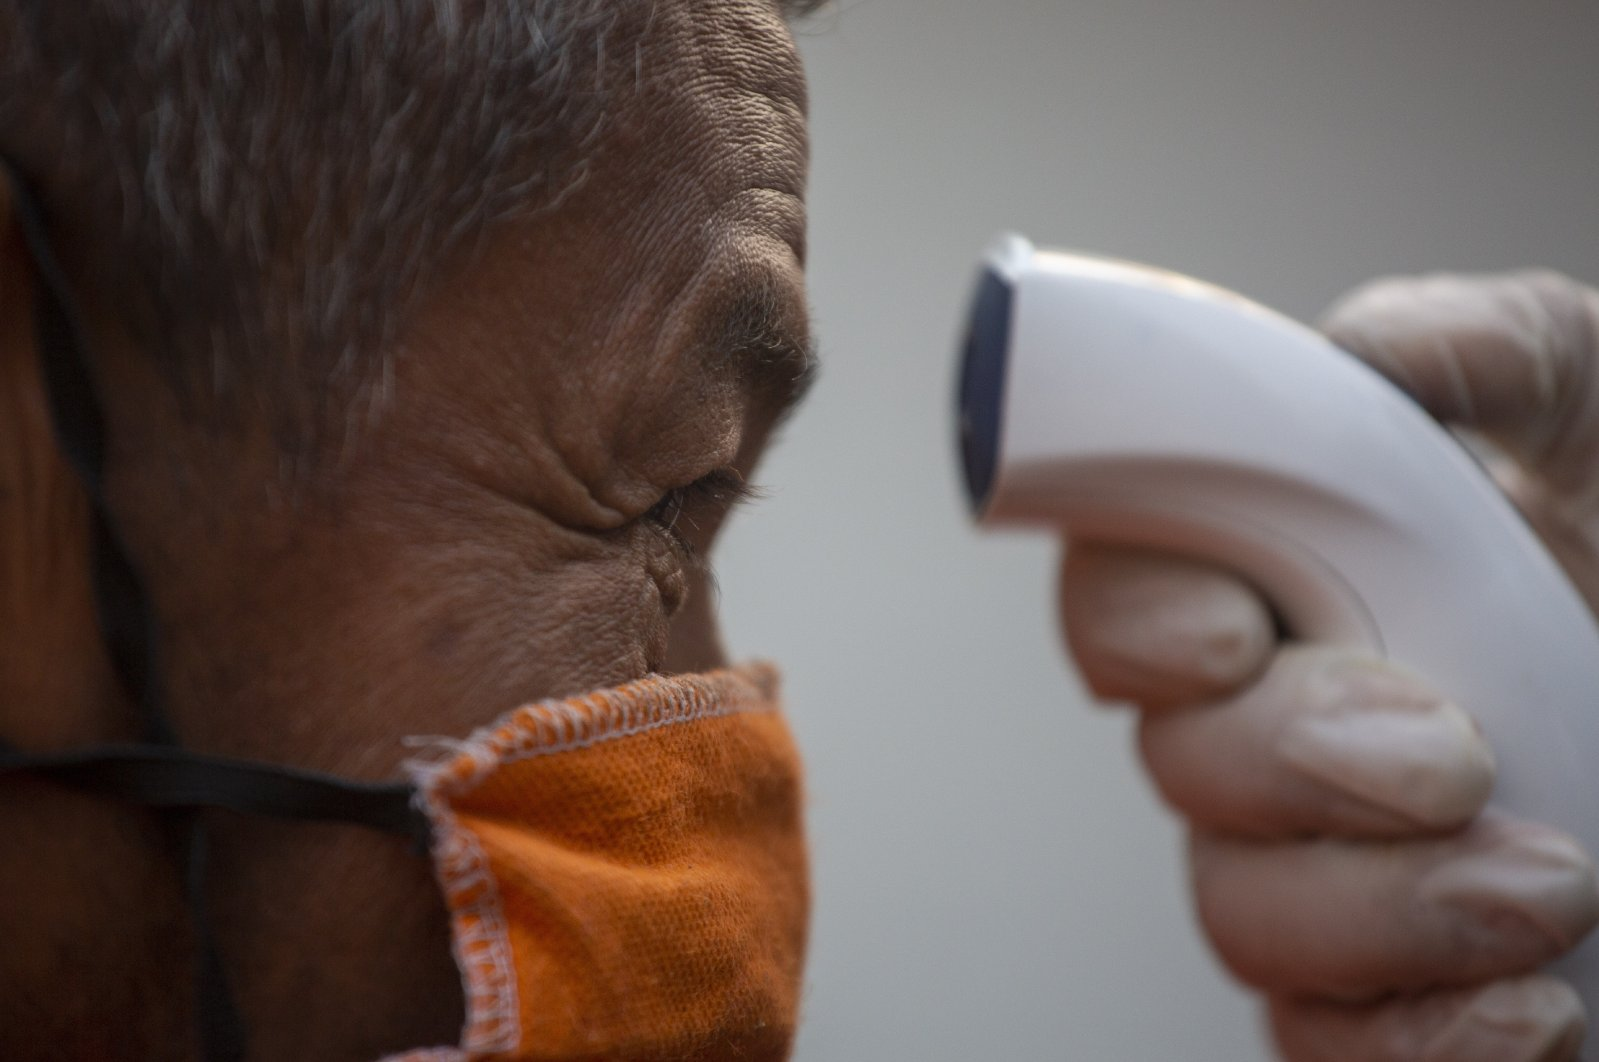 A volunteer uses a no-touch forehead thermometer to check the temperature of a man at a temporary shelter for homeless and unemployed persons in Guatemala City, Guatemala, April 28, 2020. (AP Photo)